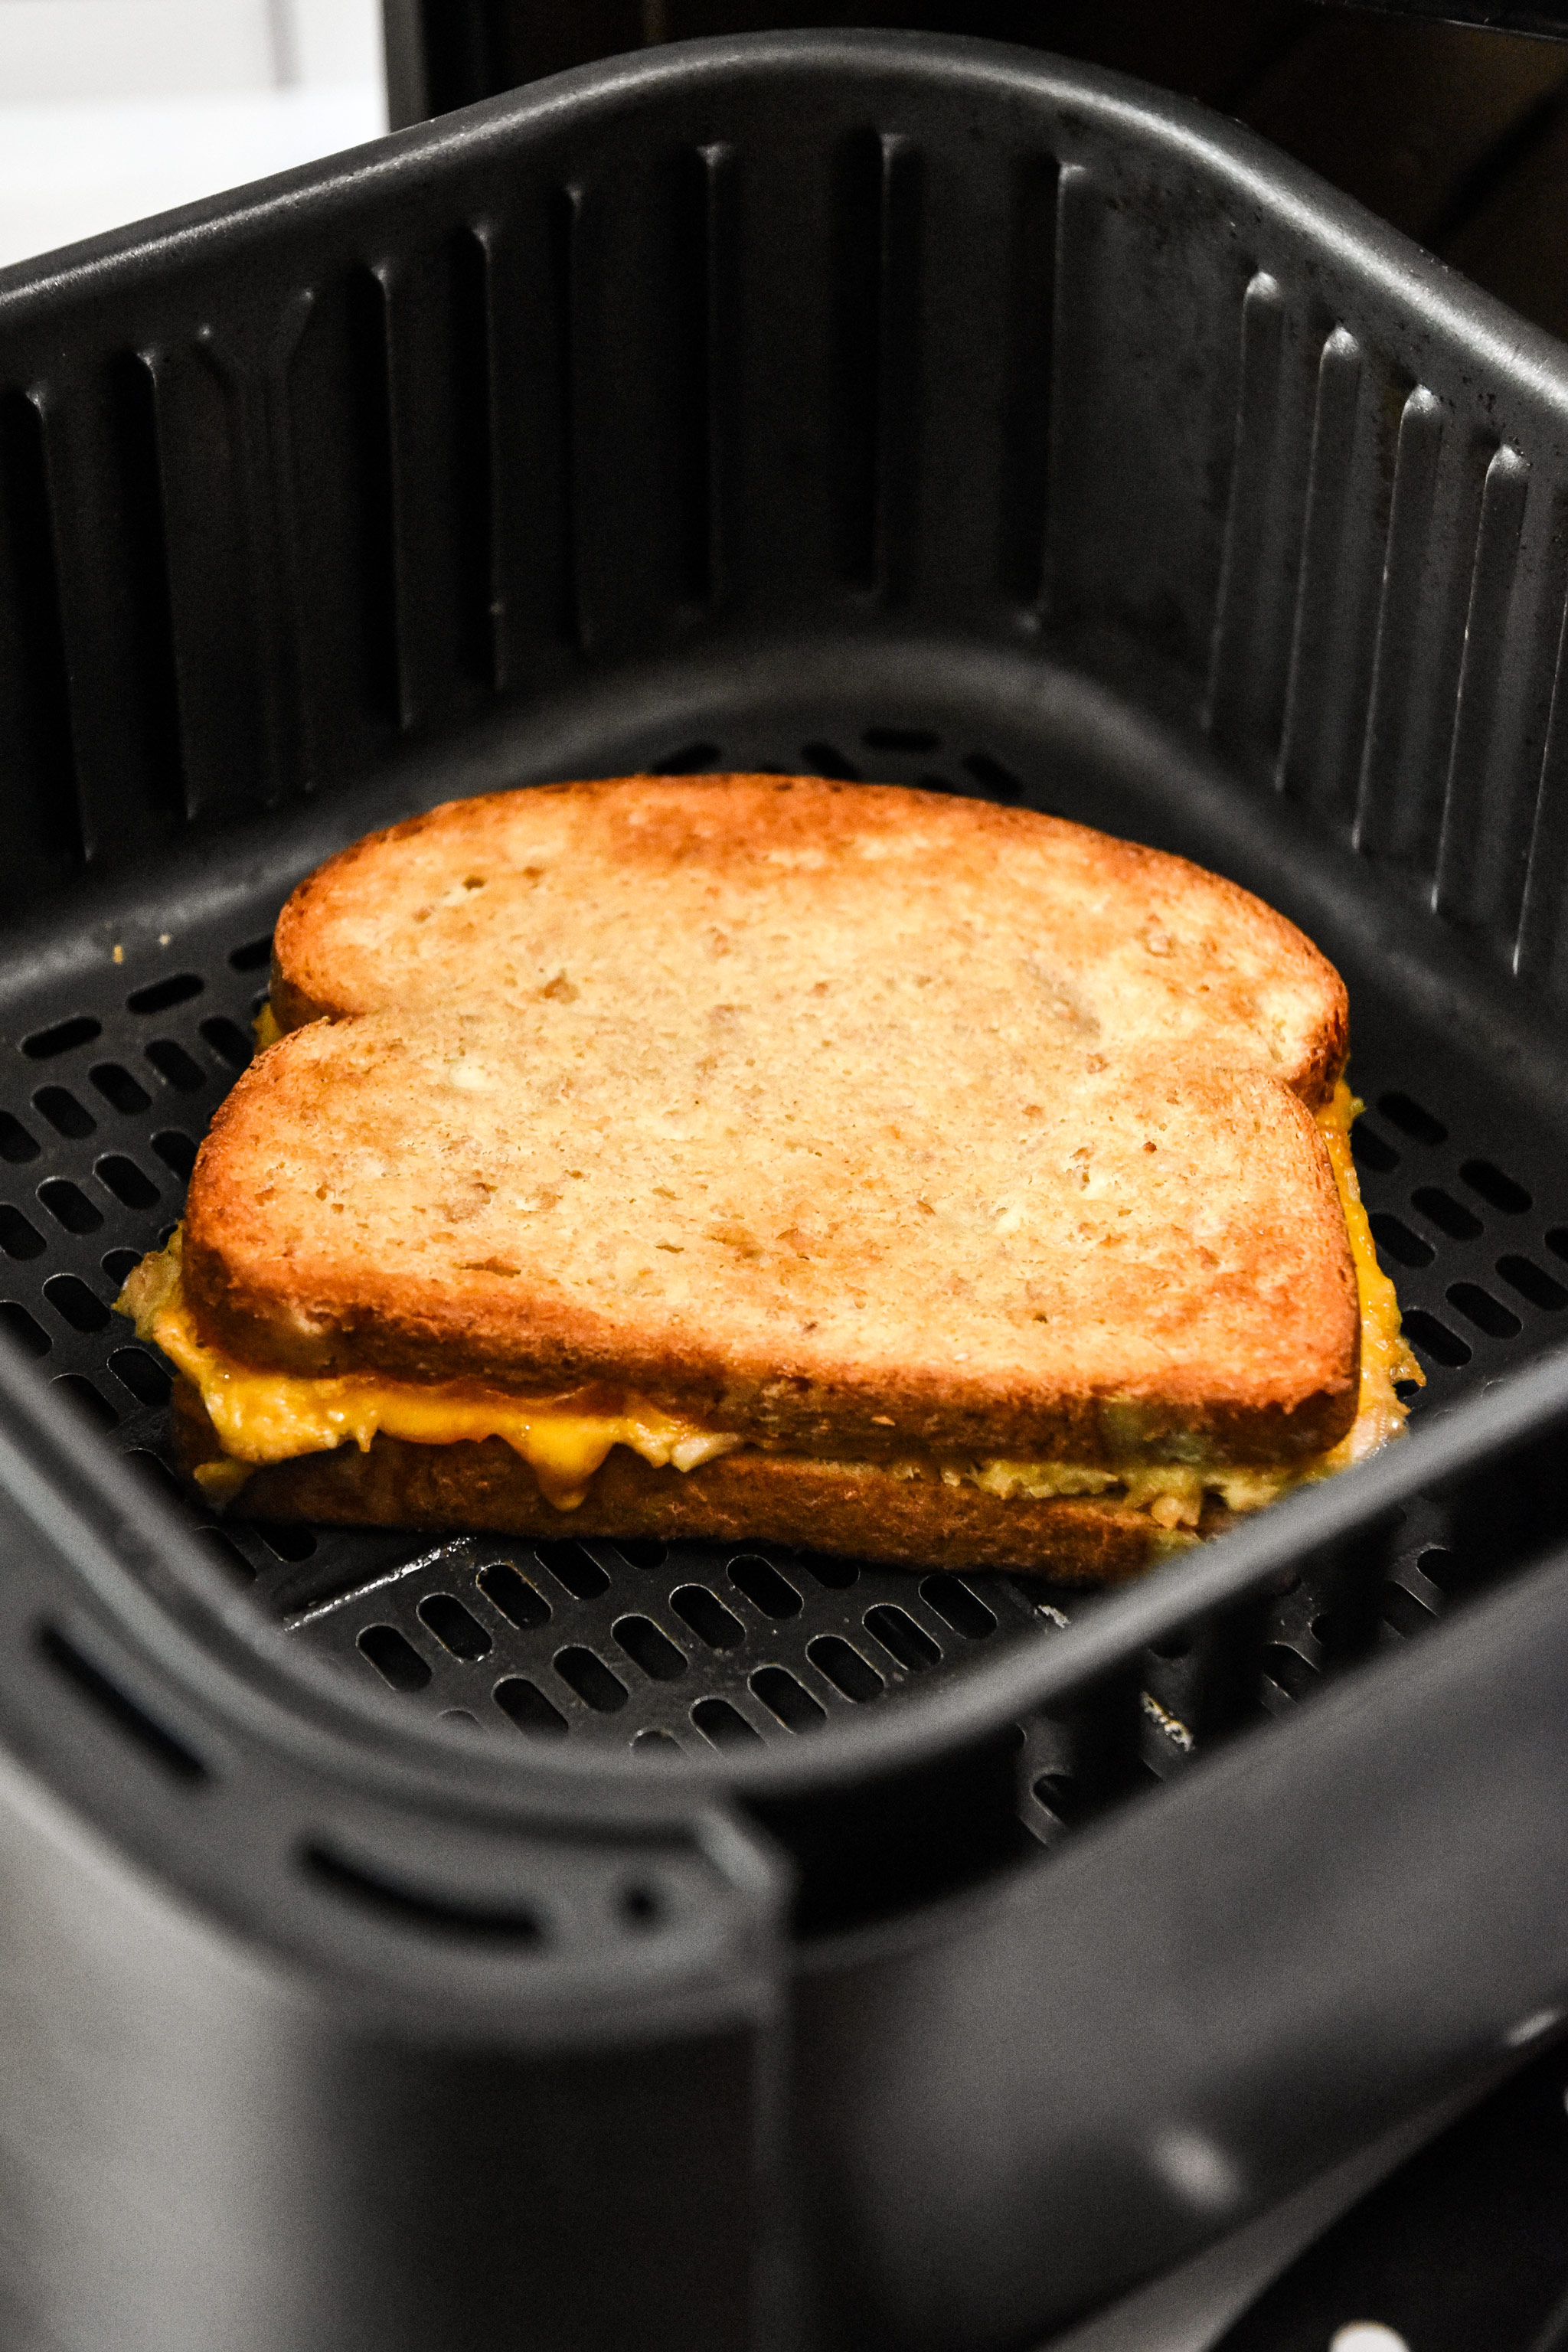 cooked air fryer tuna melt in the air fryer basket.